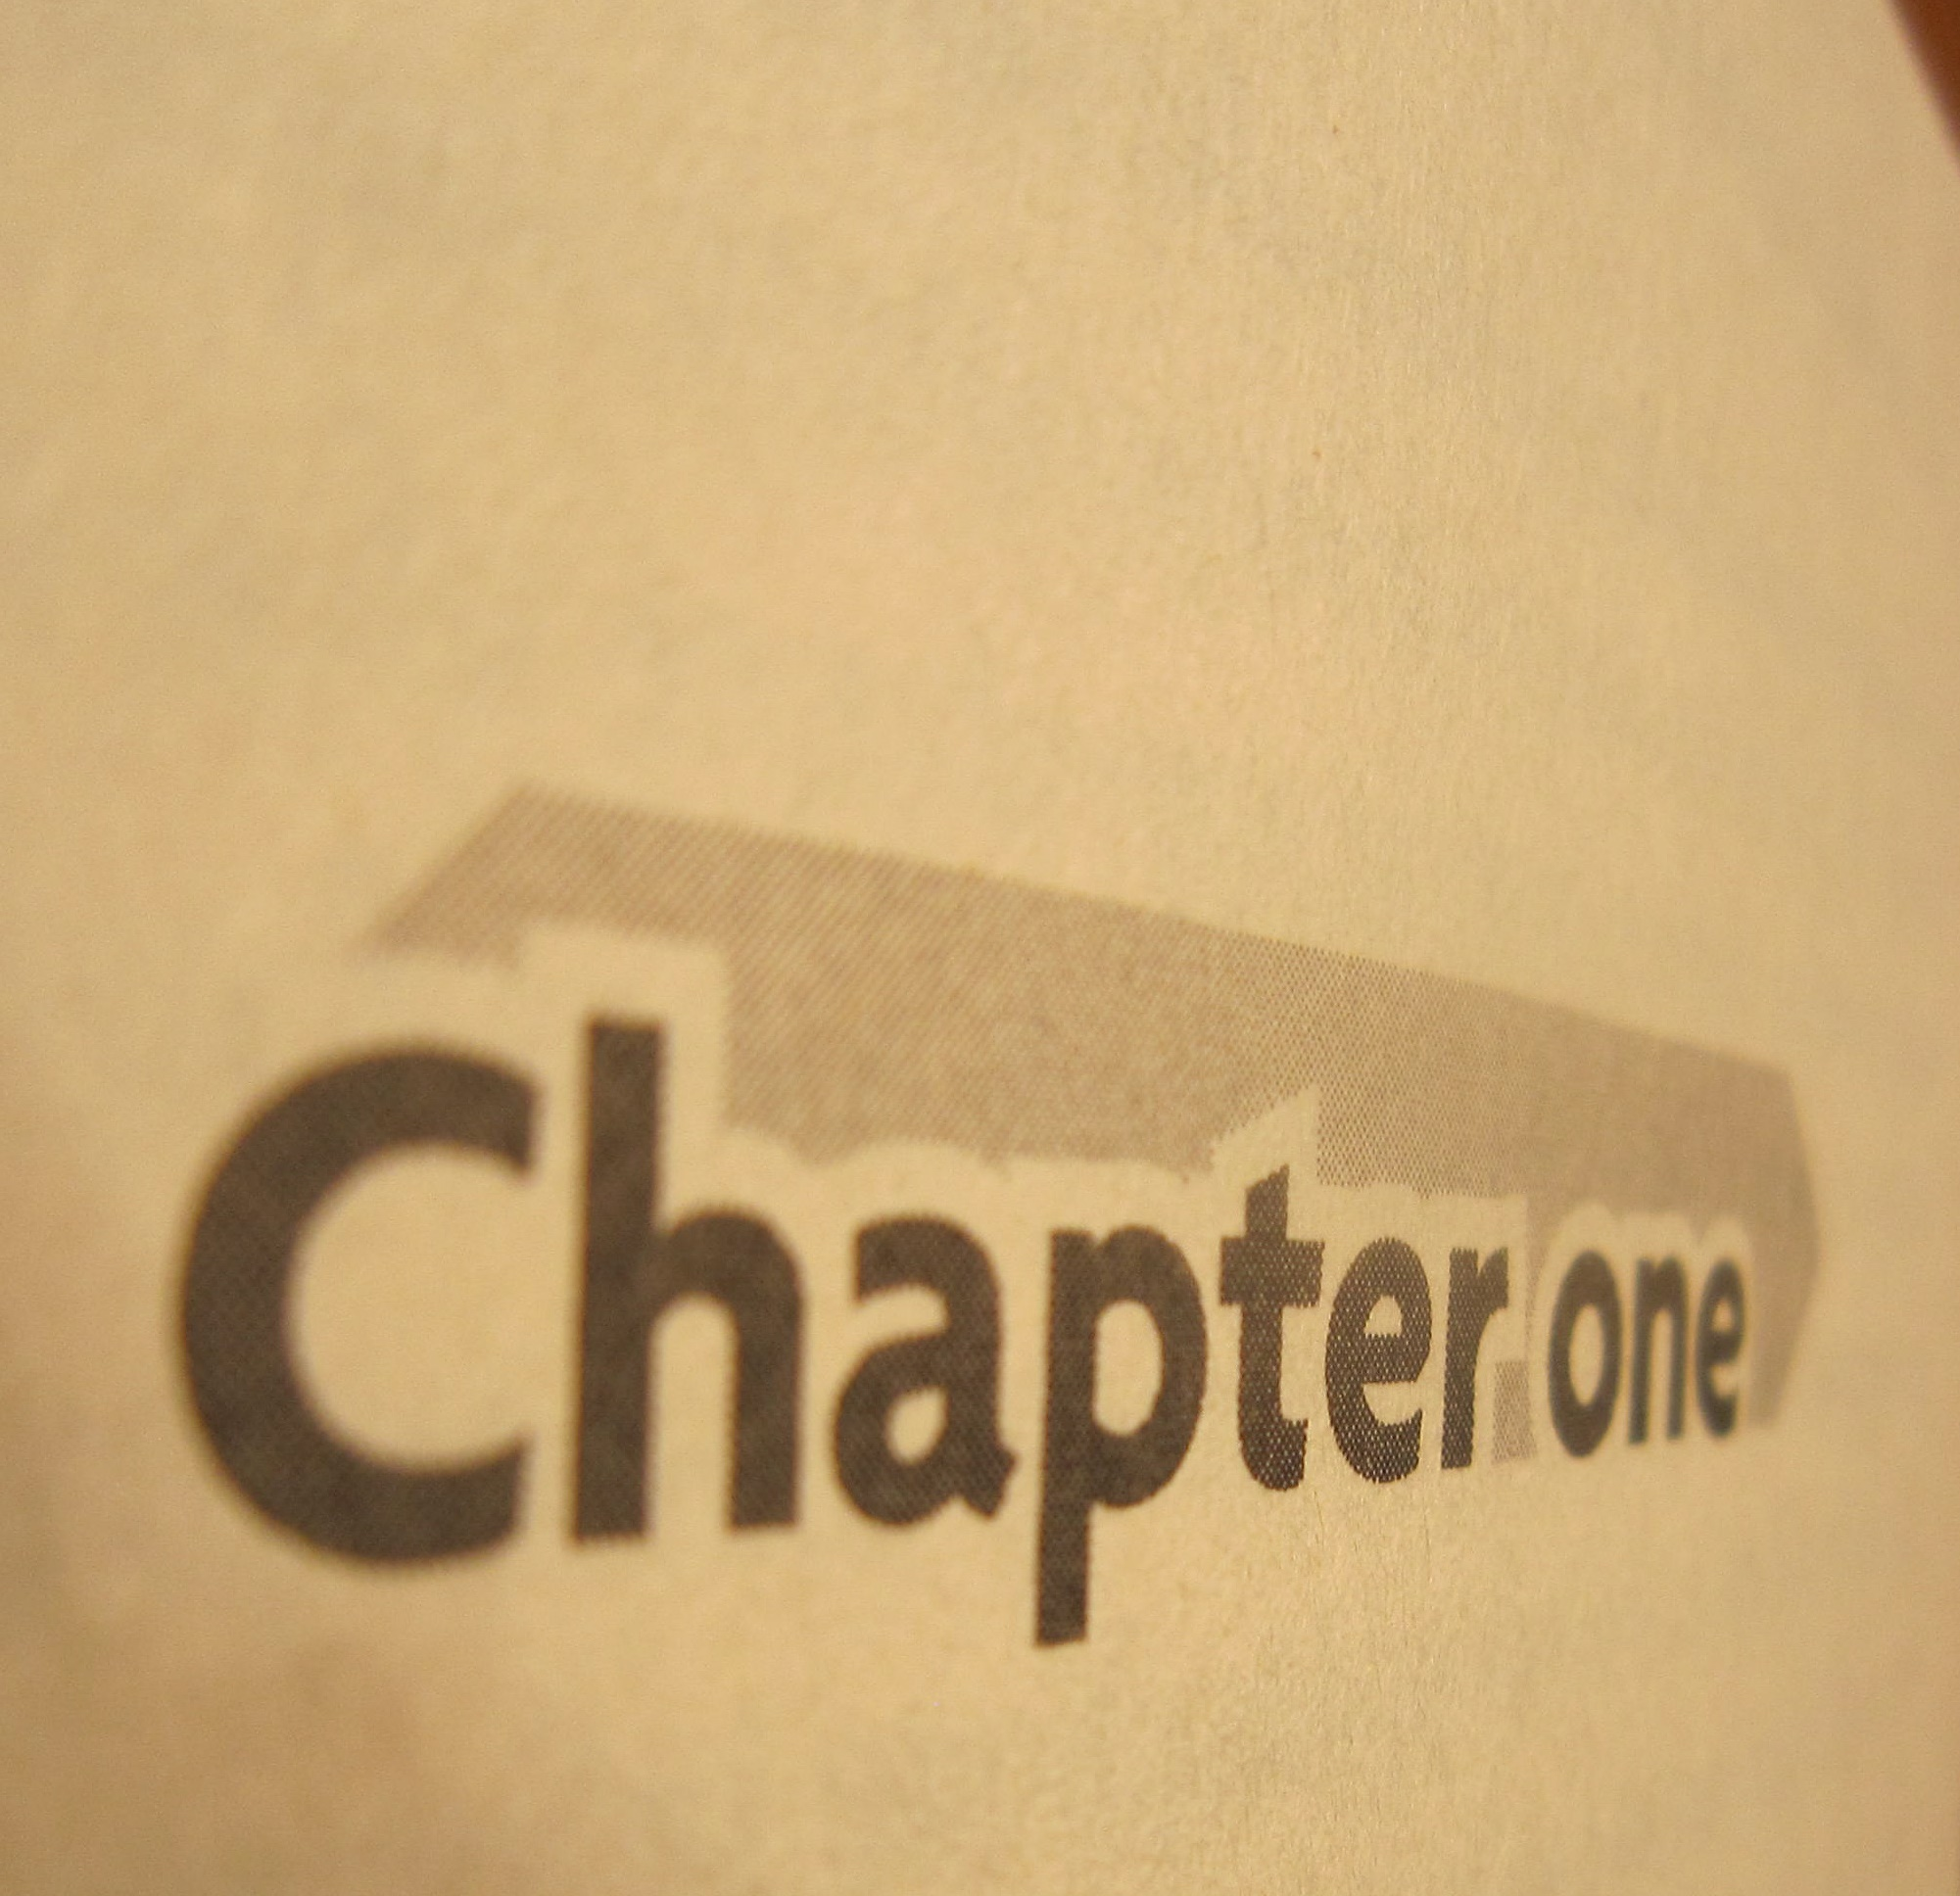 Chapter introductions